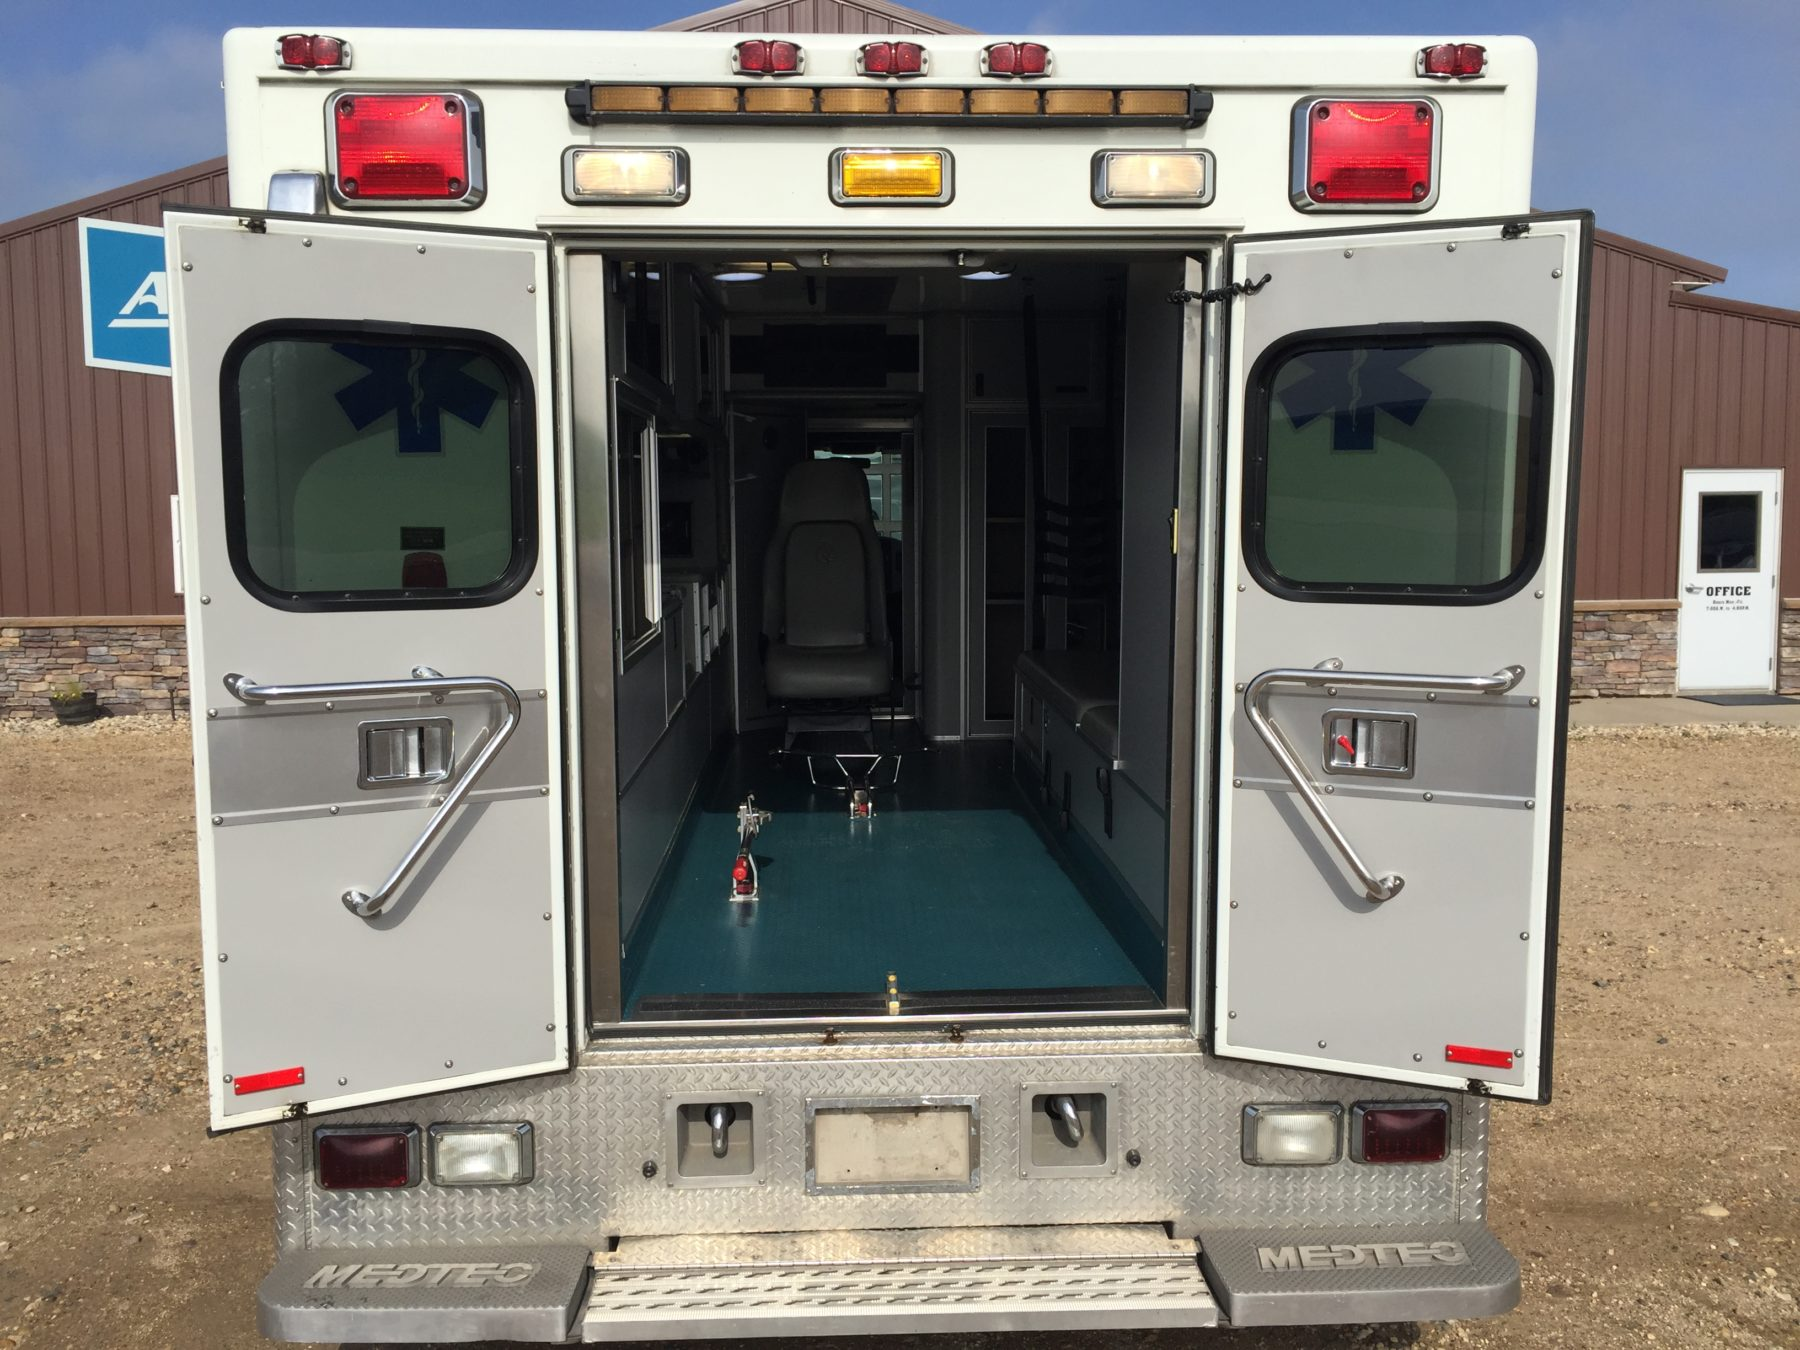 2009 International 4300 Heavy Duty Ambulance For Sale – Picture 9